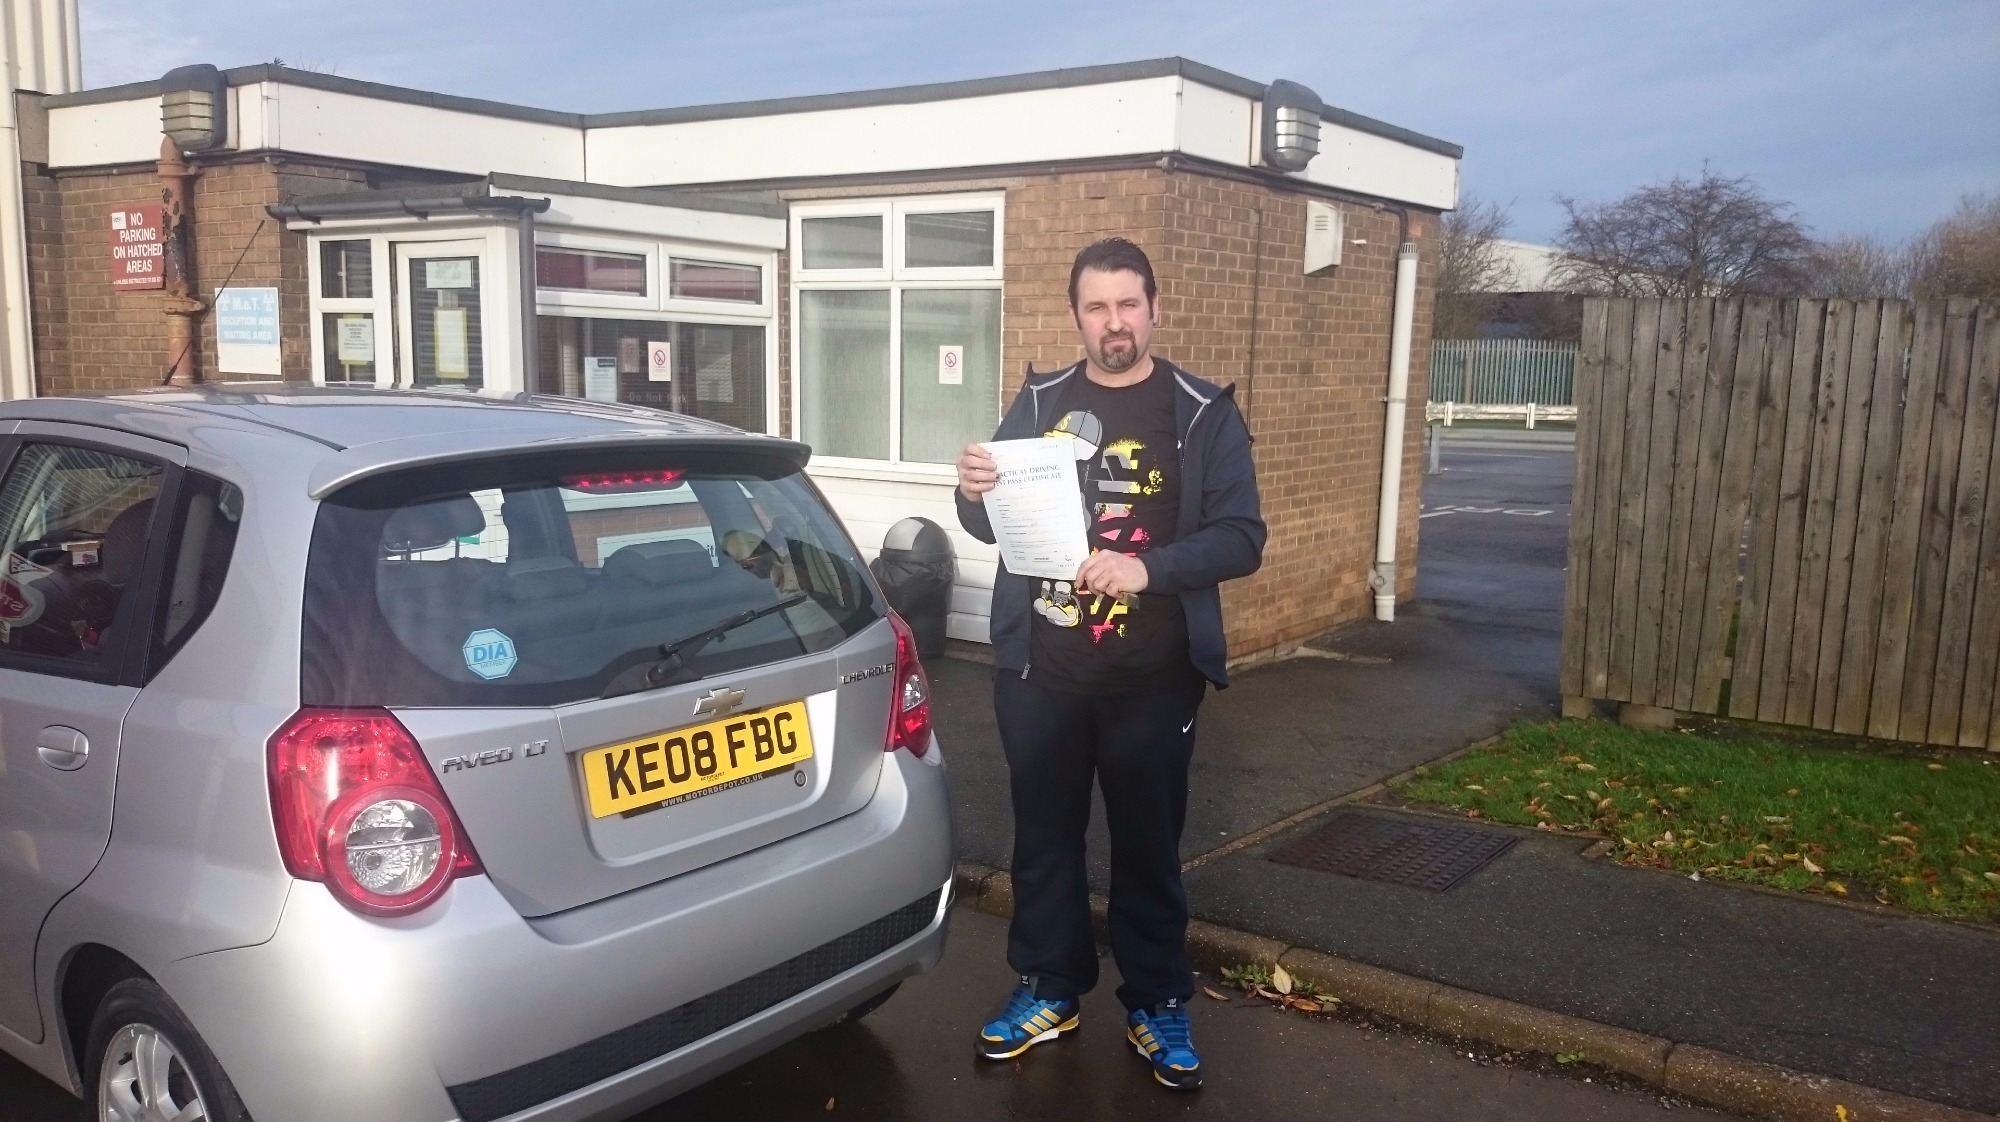 Ray Short took his driving lessons and passes his test in Grimsby with 21st Century Driving